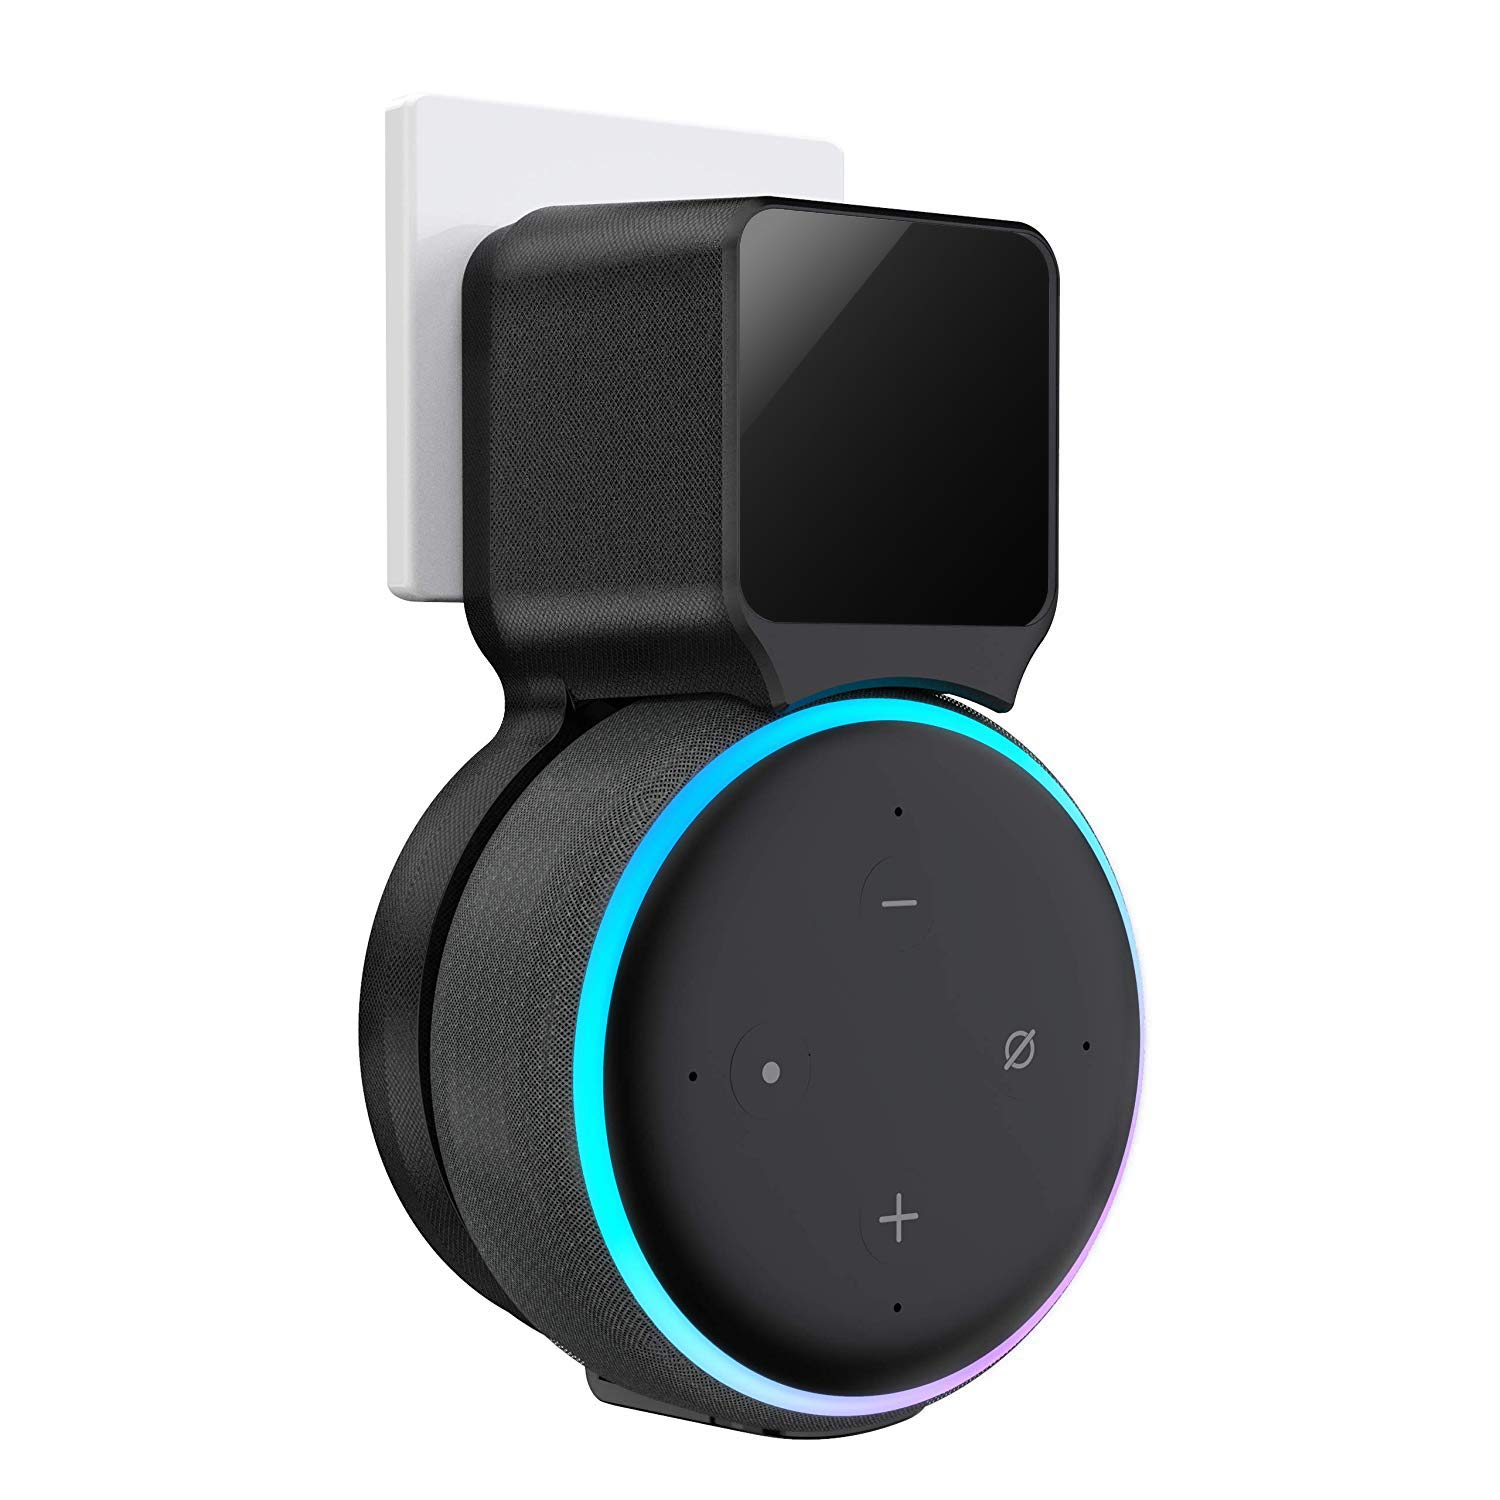 Echo Dot Wall Mount Holder, Belkertech Echo Dot Mount 3rd Generation Space-Saving Accessories for Dot Smart Speakers, Clever Echo Dot Accessories with Built-in Cable Management Hide Messy Wires by Belkertech